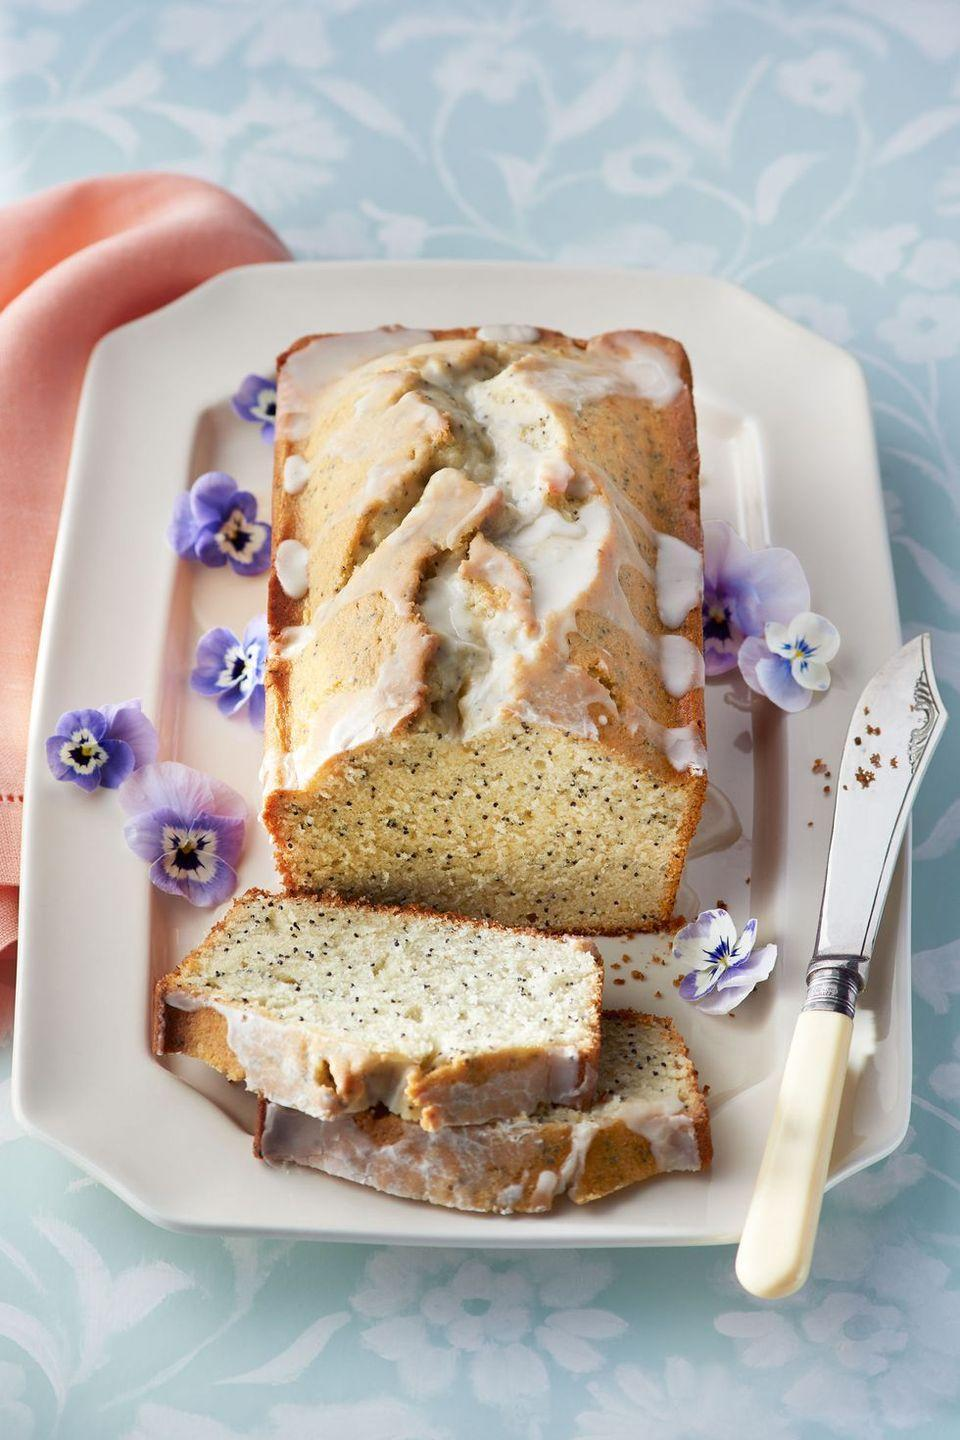 "<p>Because after dinner comes tea ... and cake. </p><p><em><a href=""https://www.countryliving.com/food-drinks/recipes/a37725/almond-and-poppy-seed-loaf-cake-recipe/"" rel=""nofollow noopener"" target=""_blank"" data-ylk=""slk:Get the recipe from Country Living »"" class=""link rapid-noclick-resp"">Get the recipe from Country Living »</a></em></p>"